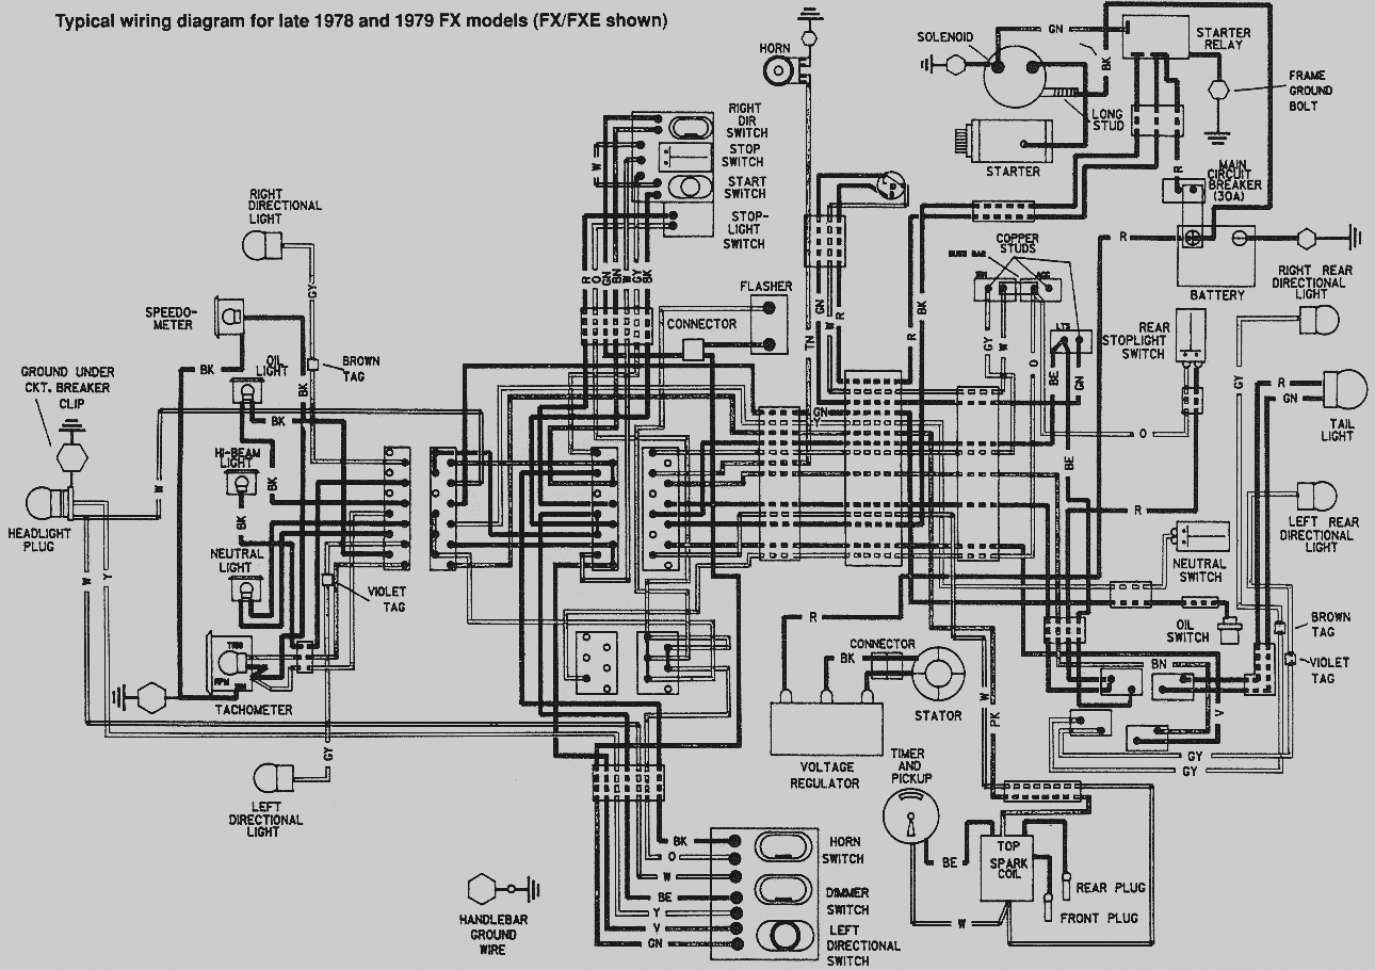 1998 flstc wiring diagram most searched wiring diagram right now  98 flstc harley davidson motorcycle diagrams wiring diagrams structure 1998 flstc wiring diagram